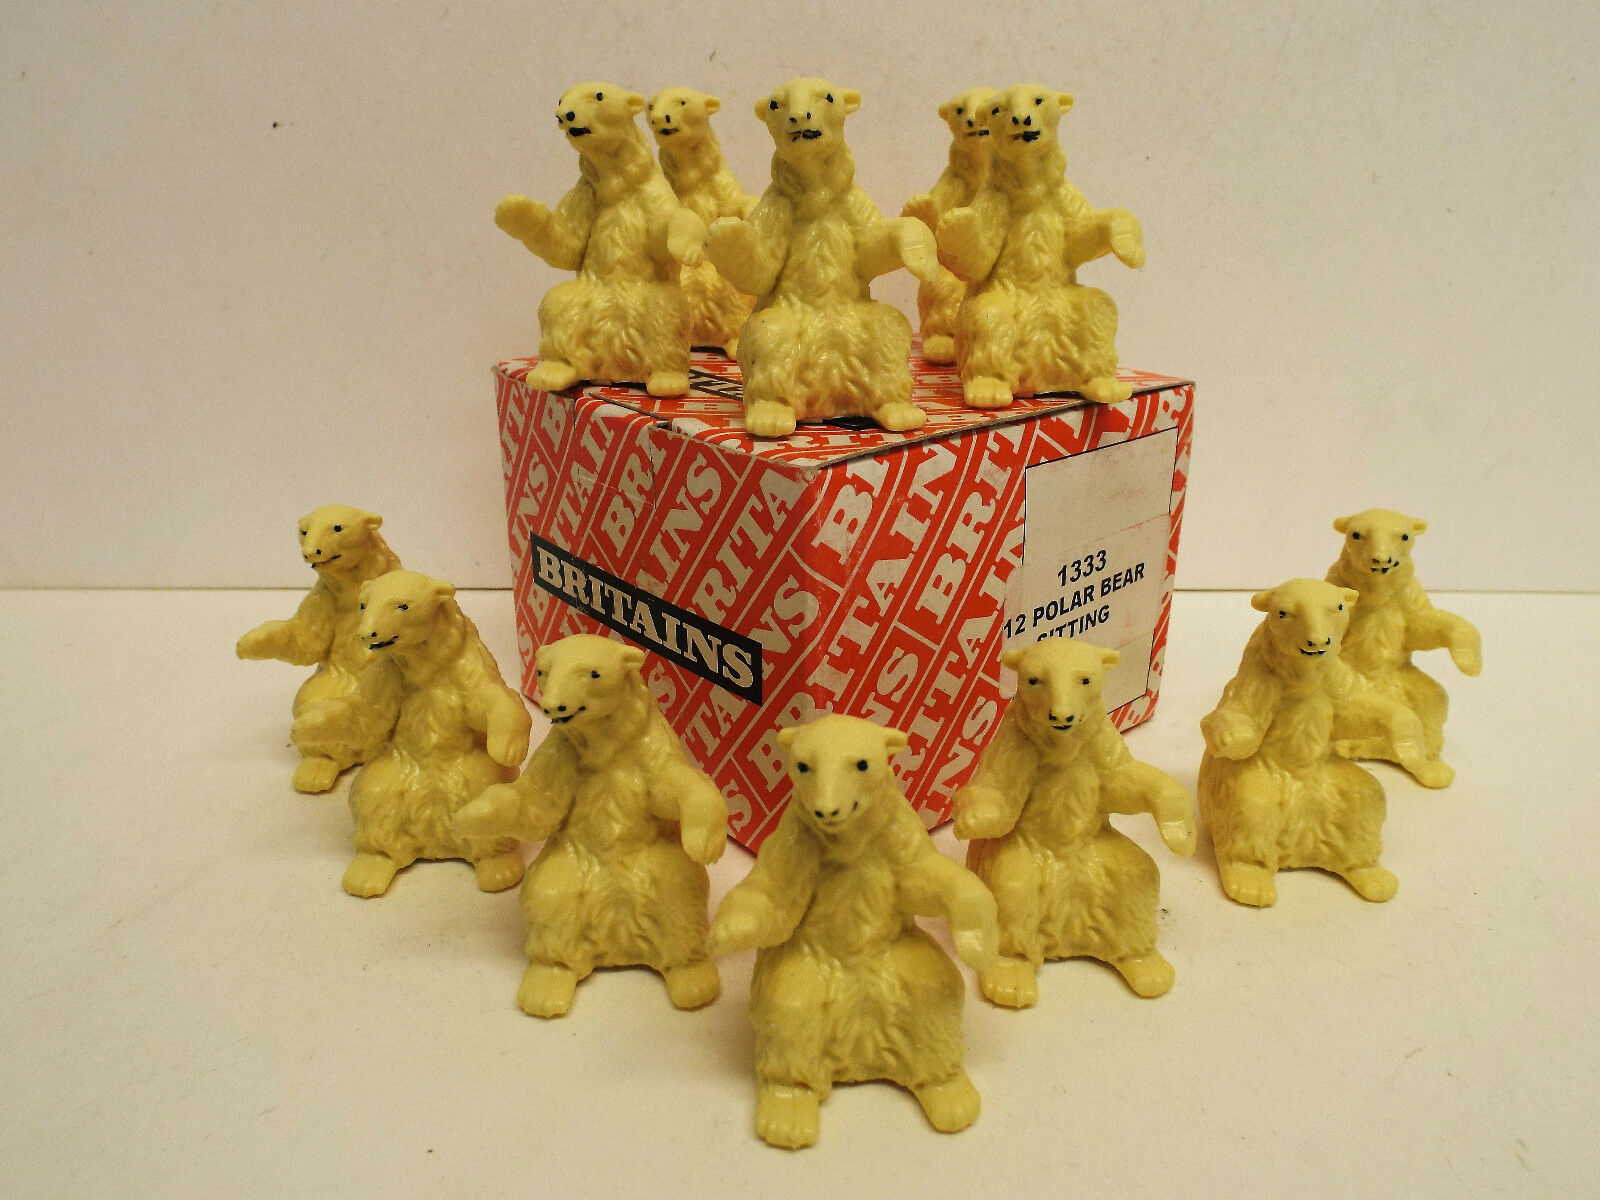 BRITAIN'S 1333 TRADE BOX OF 12 POLAR BEARS SITTING 54MM MIB (BS840)